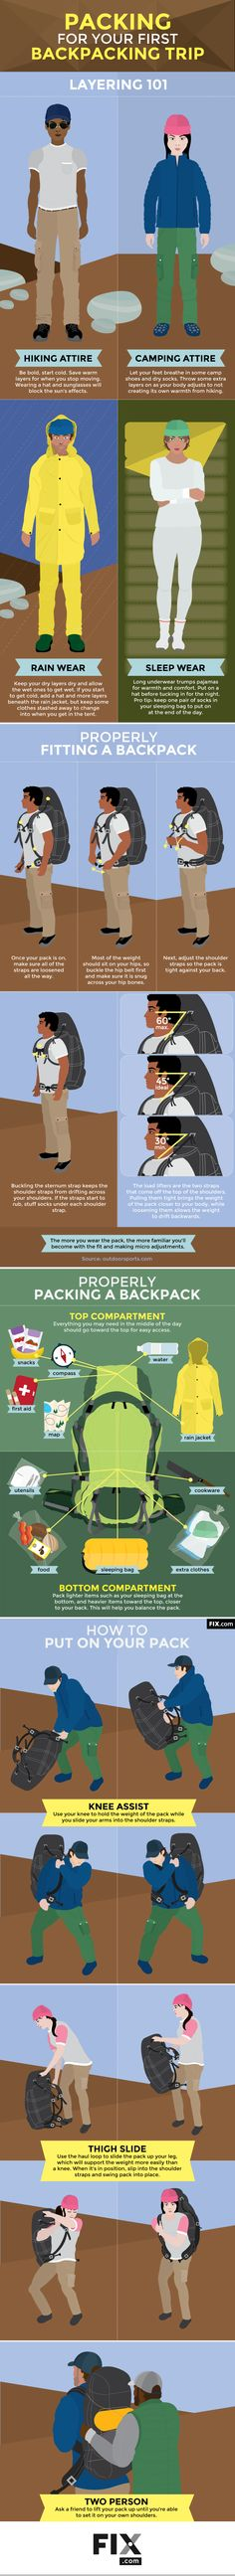 How to Pack for Your First Backpacking Trip #Infographic #HowTo